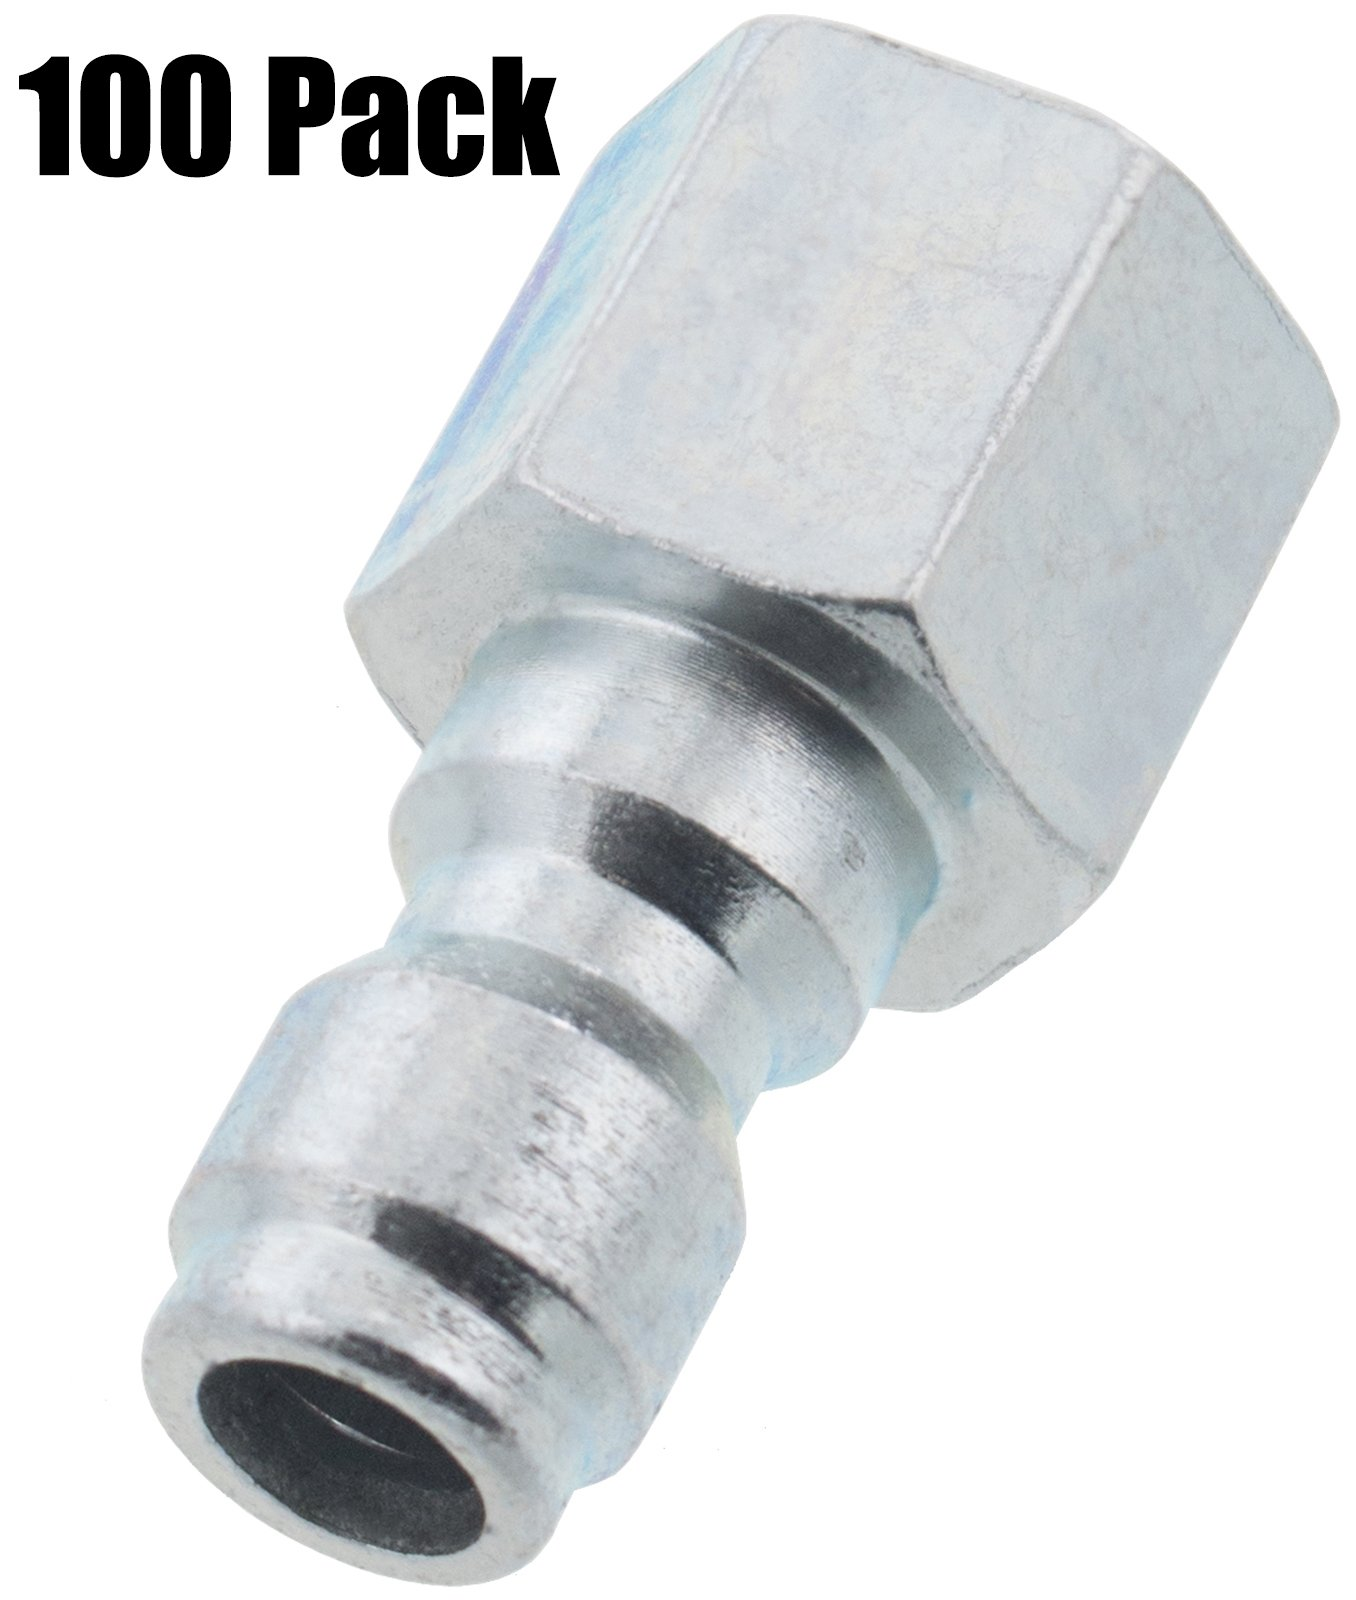 Erie Tools 100 1/4'' FPT Female Zinc Plated Steel Plug Quick Connect Coupler 4000 PSI 10 GPM for Pressure Washer Gun Hose Wand Nozzle